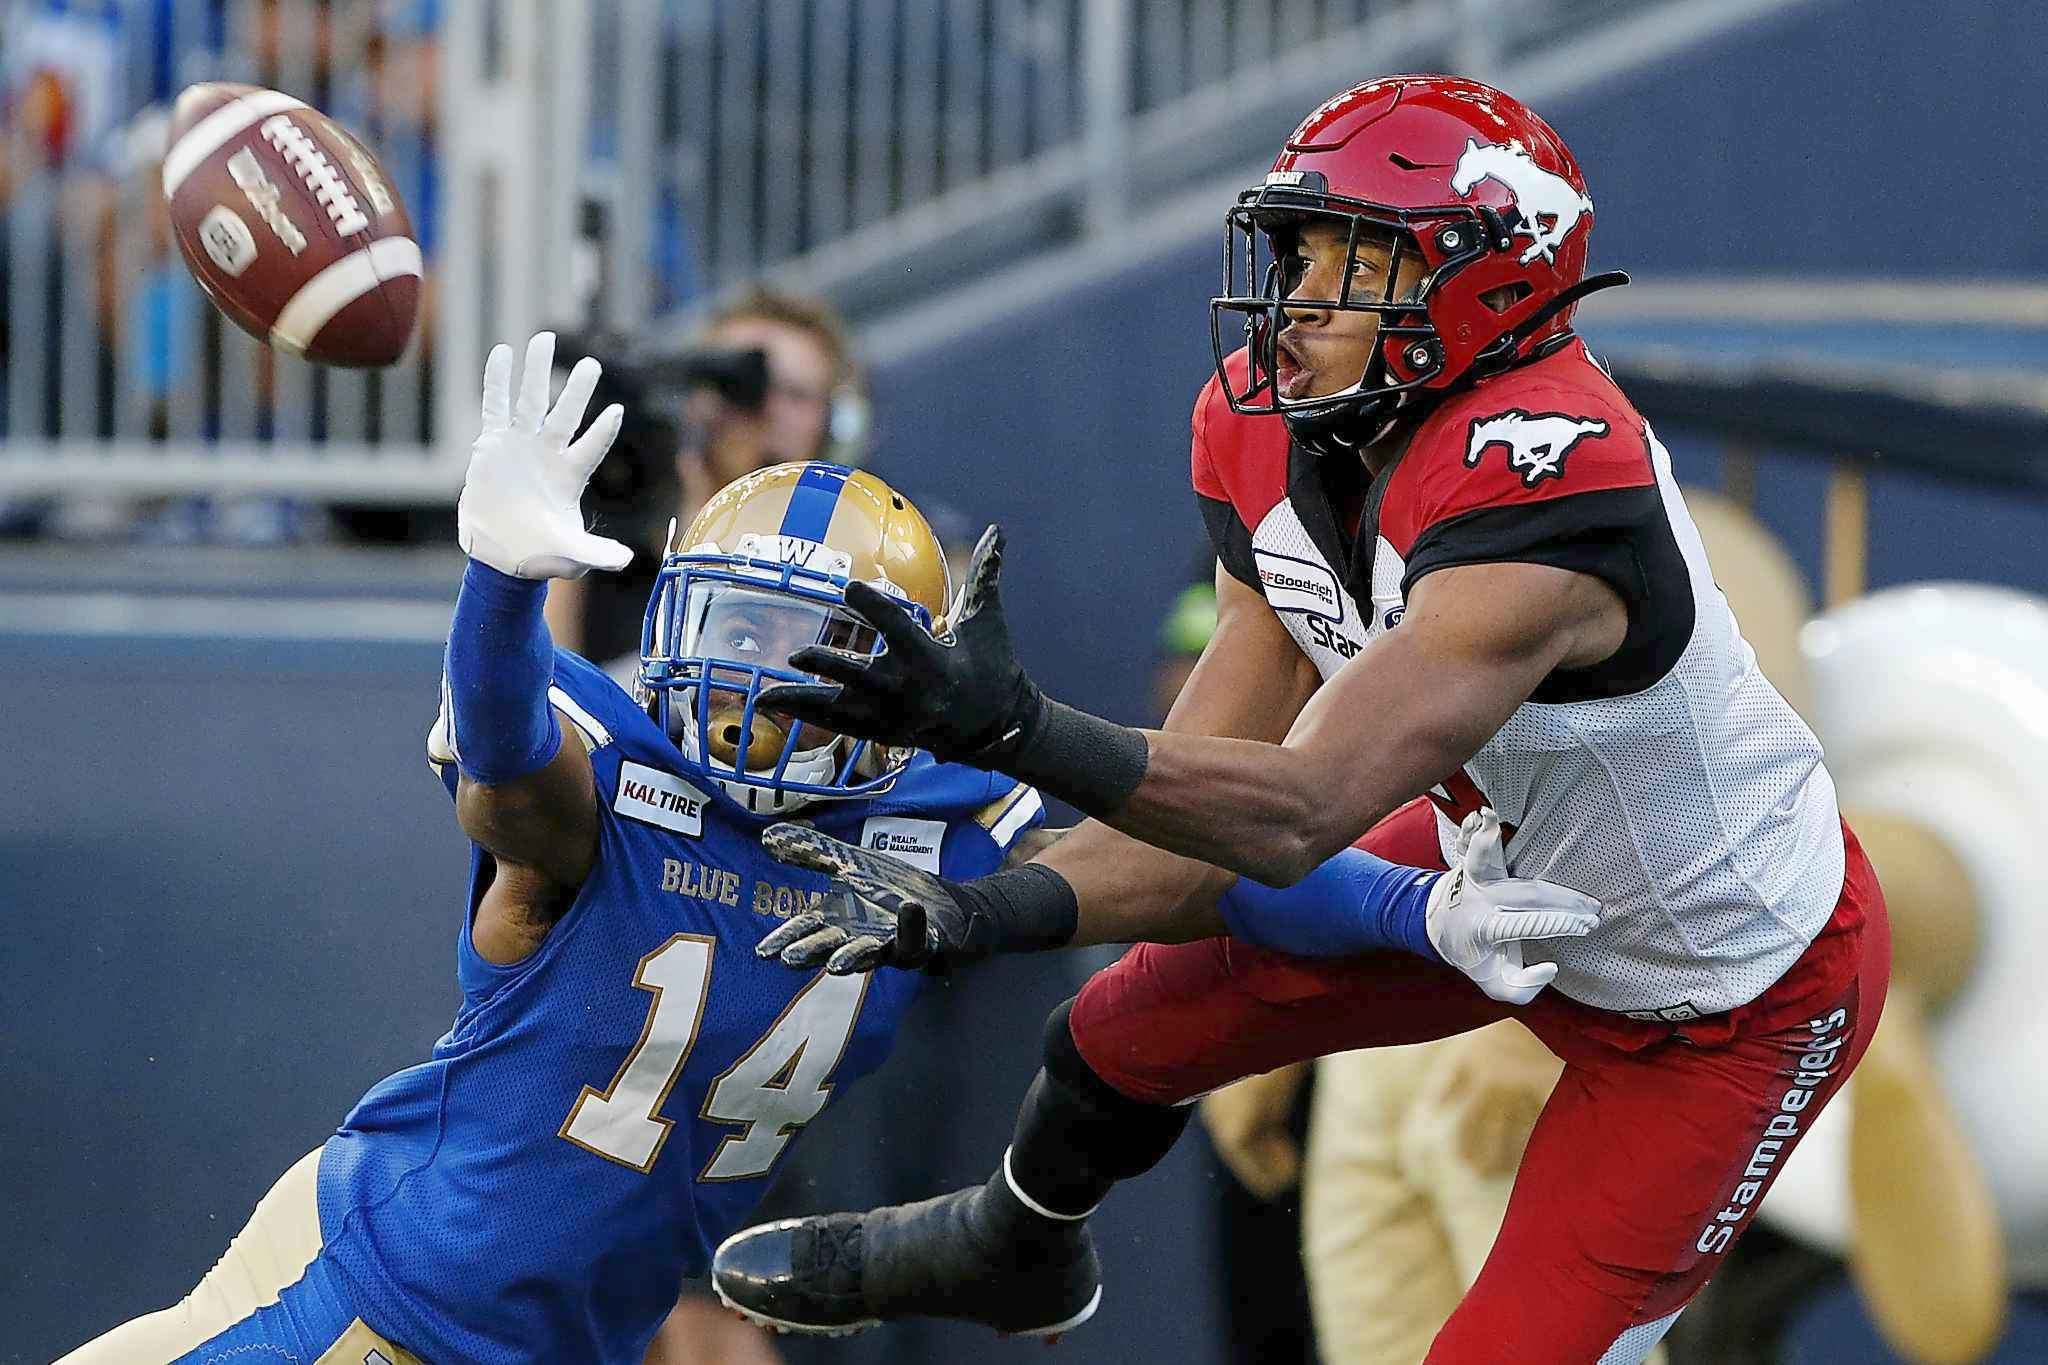 JOHN WOODS / THE CANADIAN PRESS FILES</p><p>A big play was needed and the Bombers' Marcus Sayles came up with the massive interception in the end zone.</p>